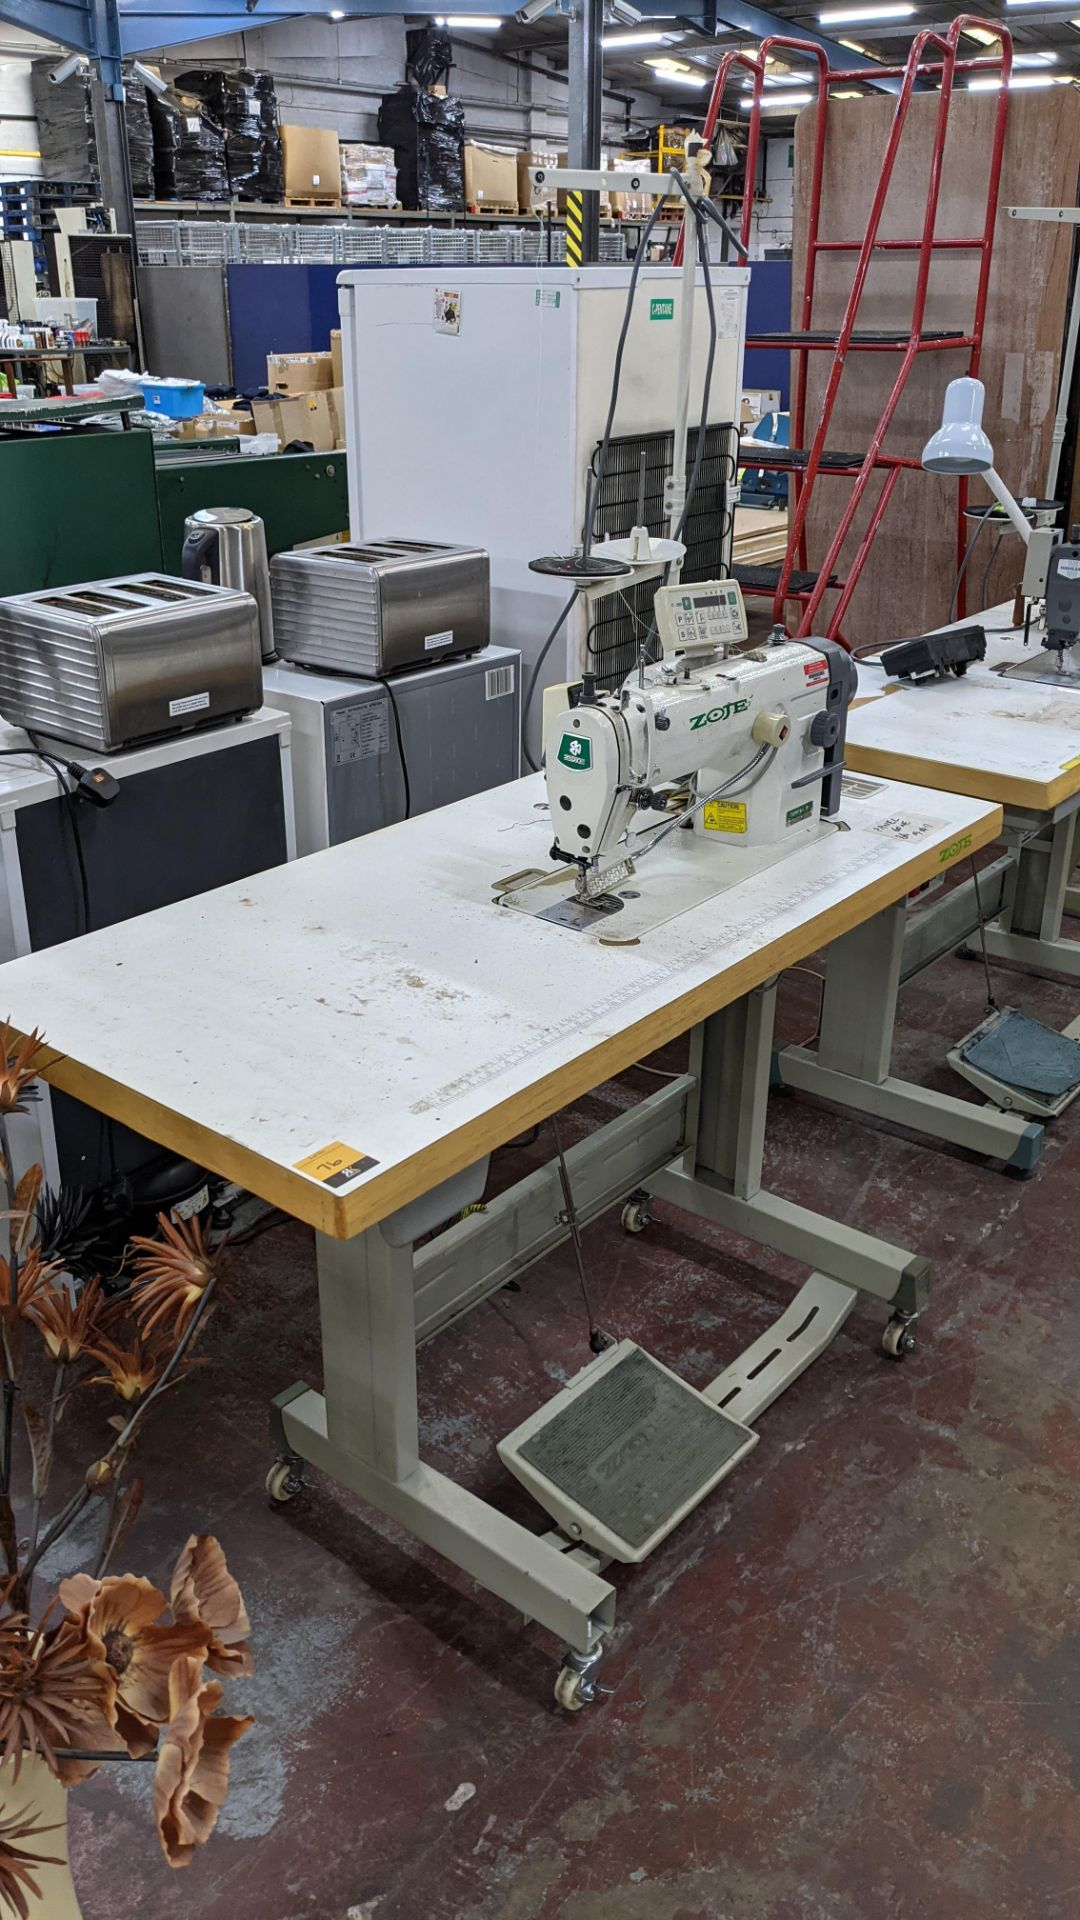 Zoje model ZJ8800A-D3/PF sewing machine with model C-200 digital controller - Image 15 of 15